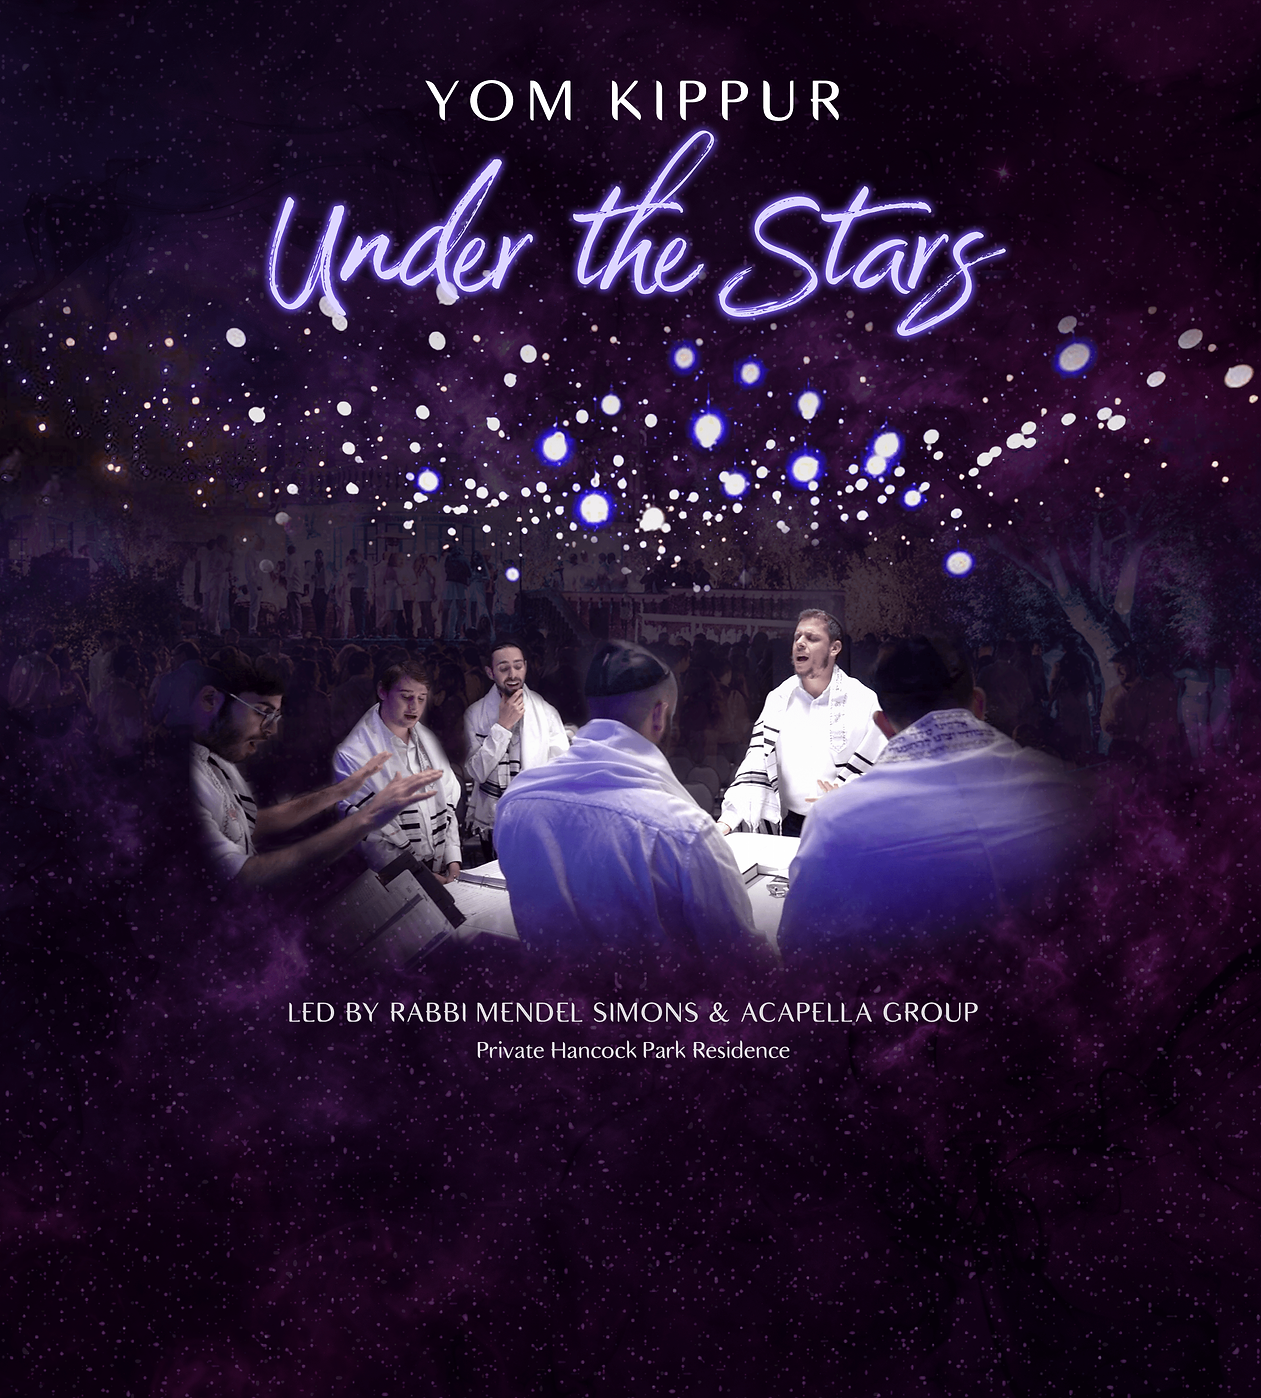 YJP LA Yom Kippur Under the Stars Web 1.